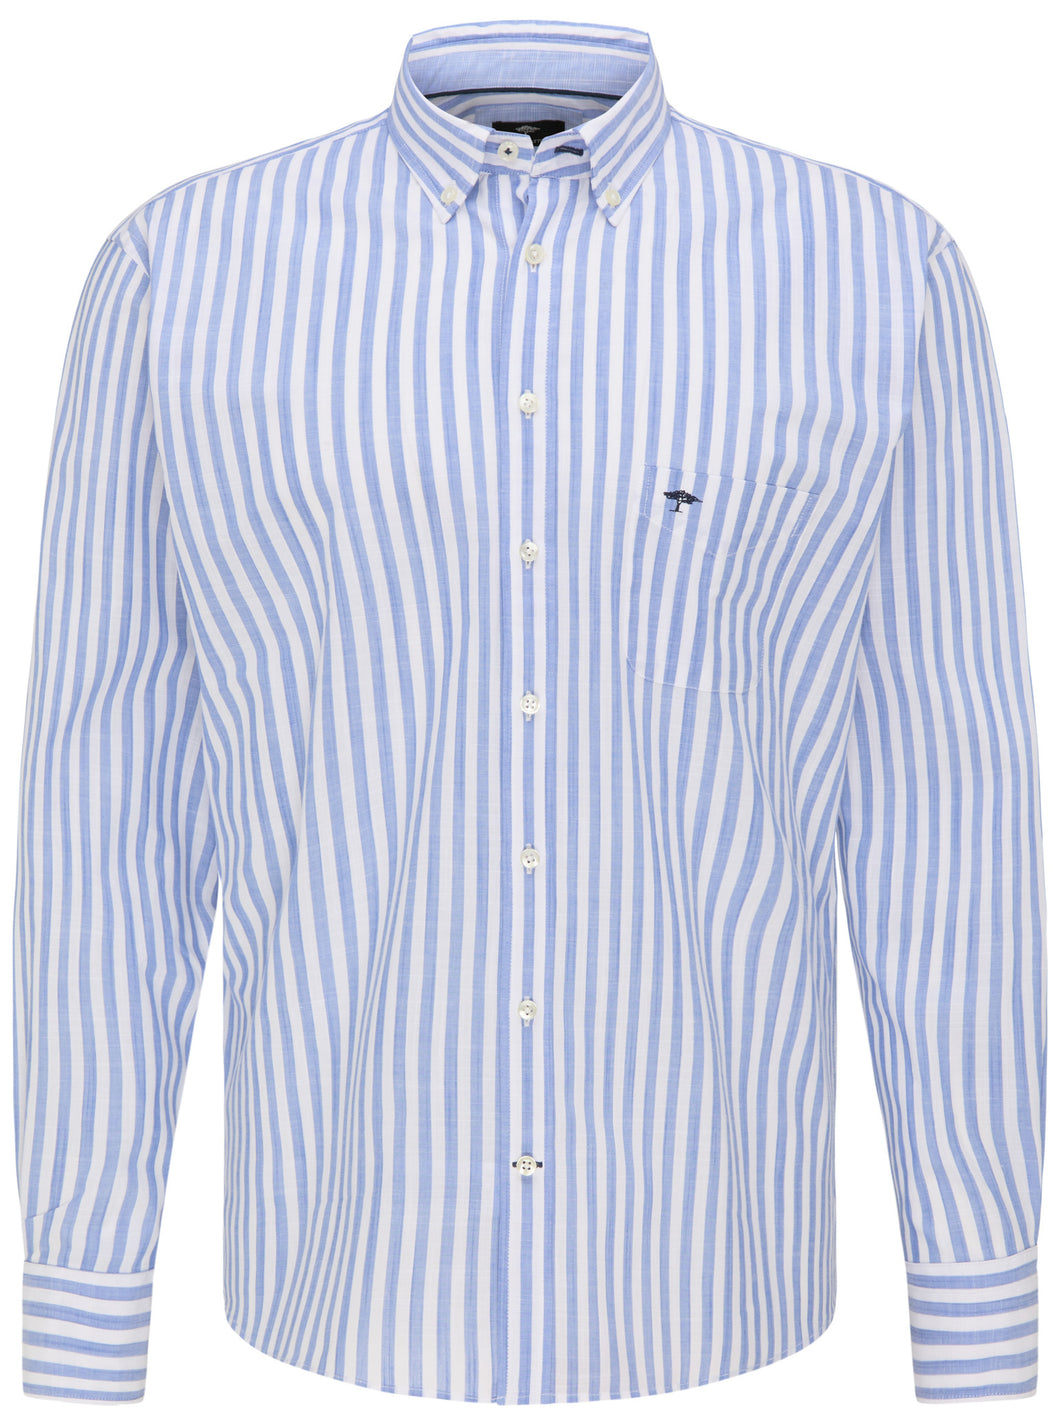 Fynch Hatton Lightweight Summer Story, Button Down Collar, Long Sleeve in regular Classic fit.    Chosen in  Blue Stripe